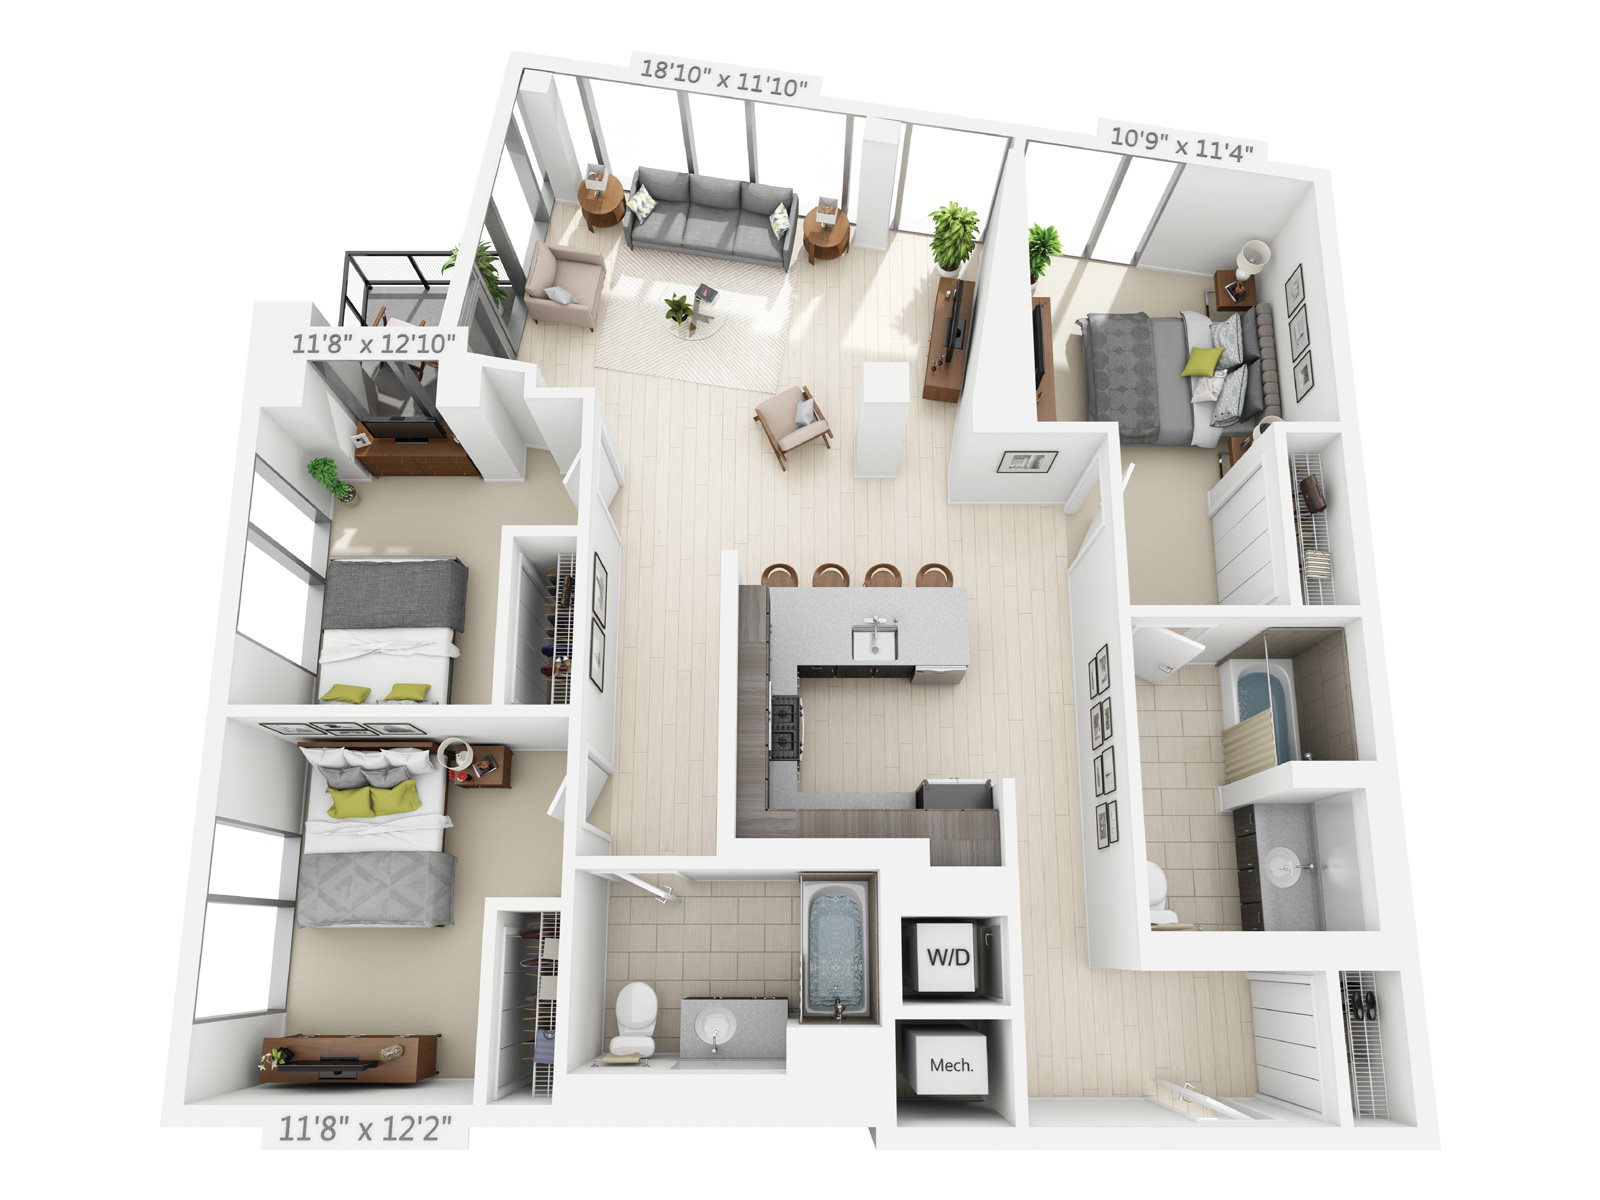 3 BEDROOM/2 BATH D1 Floor Plan 13